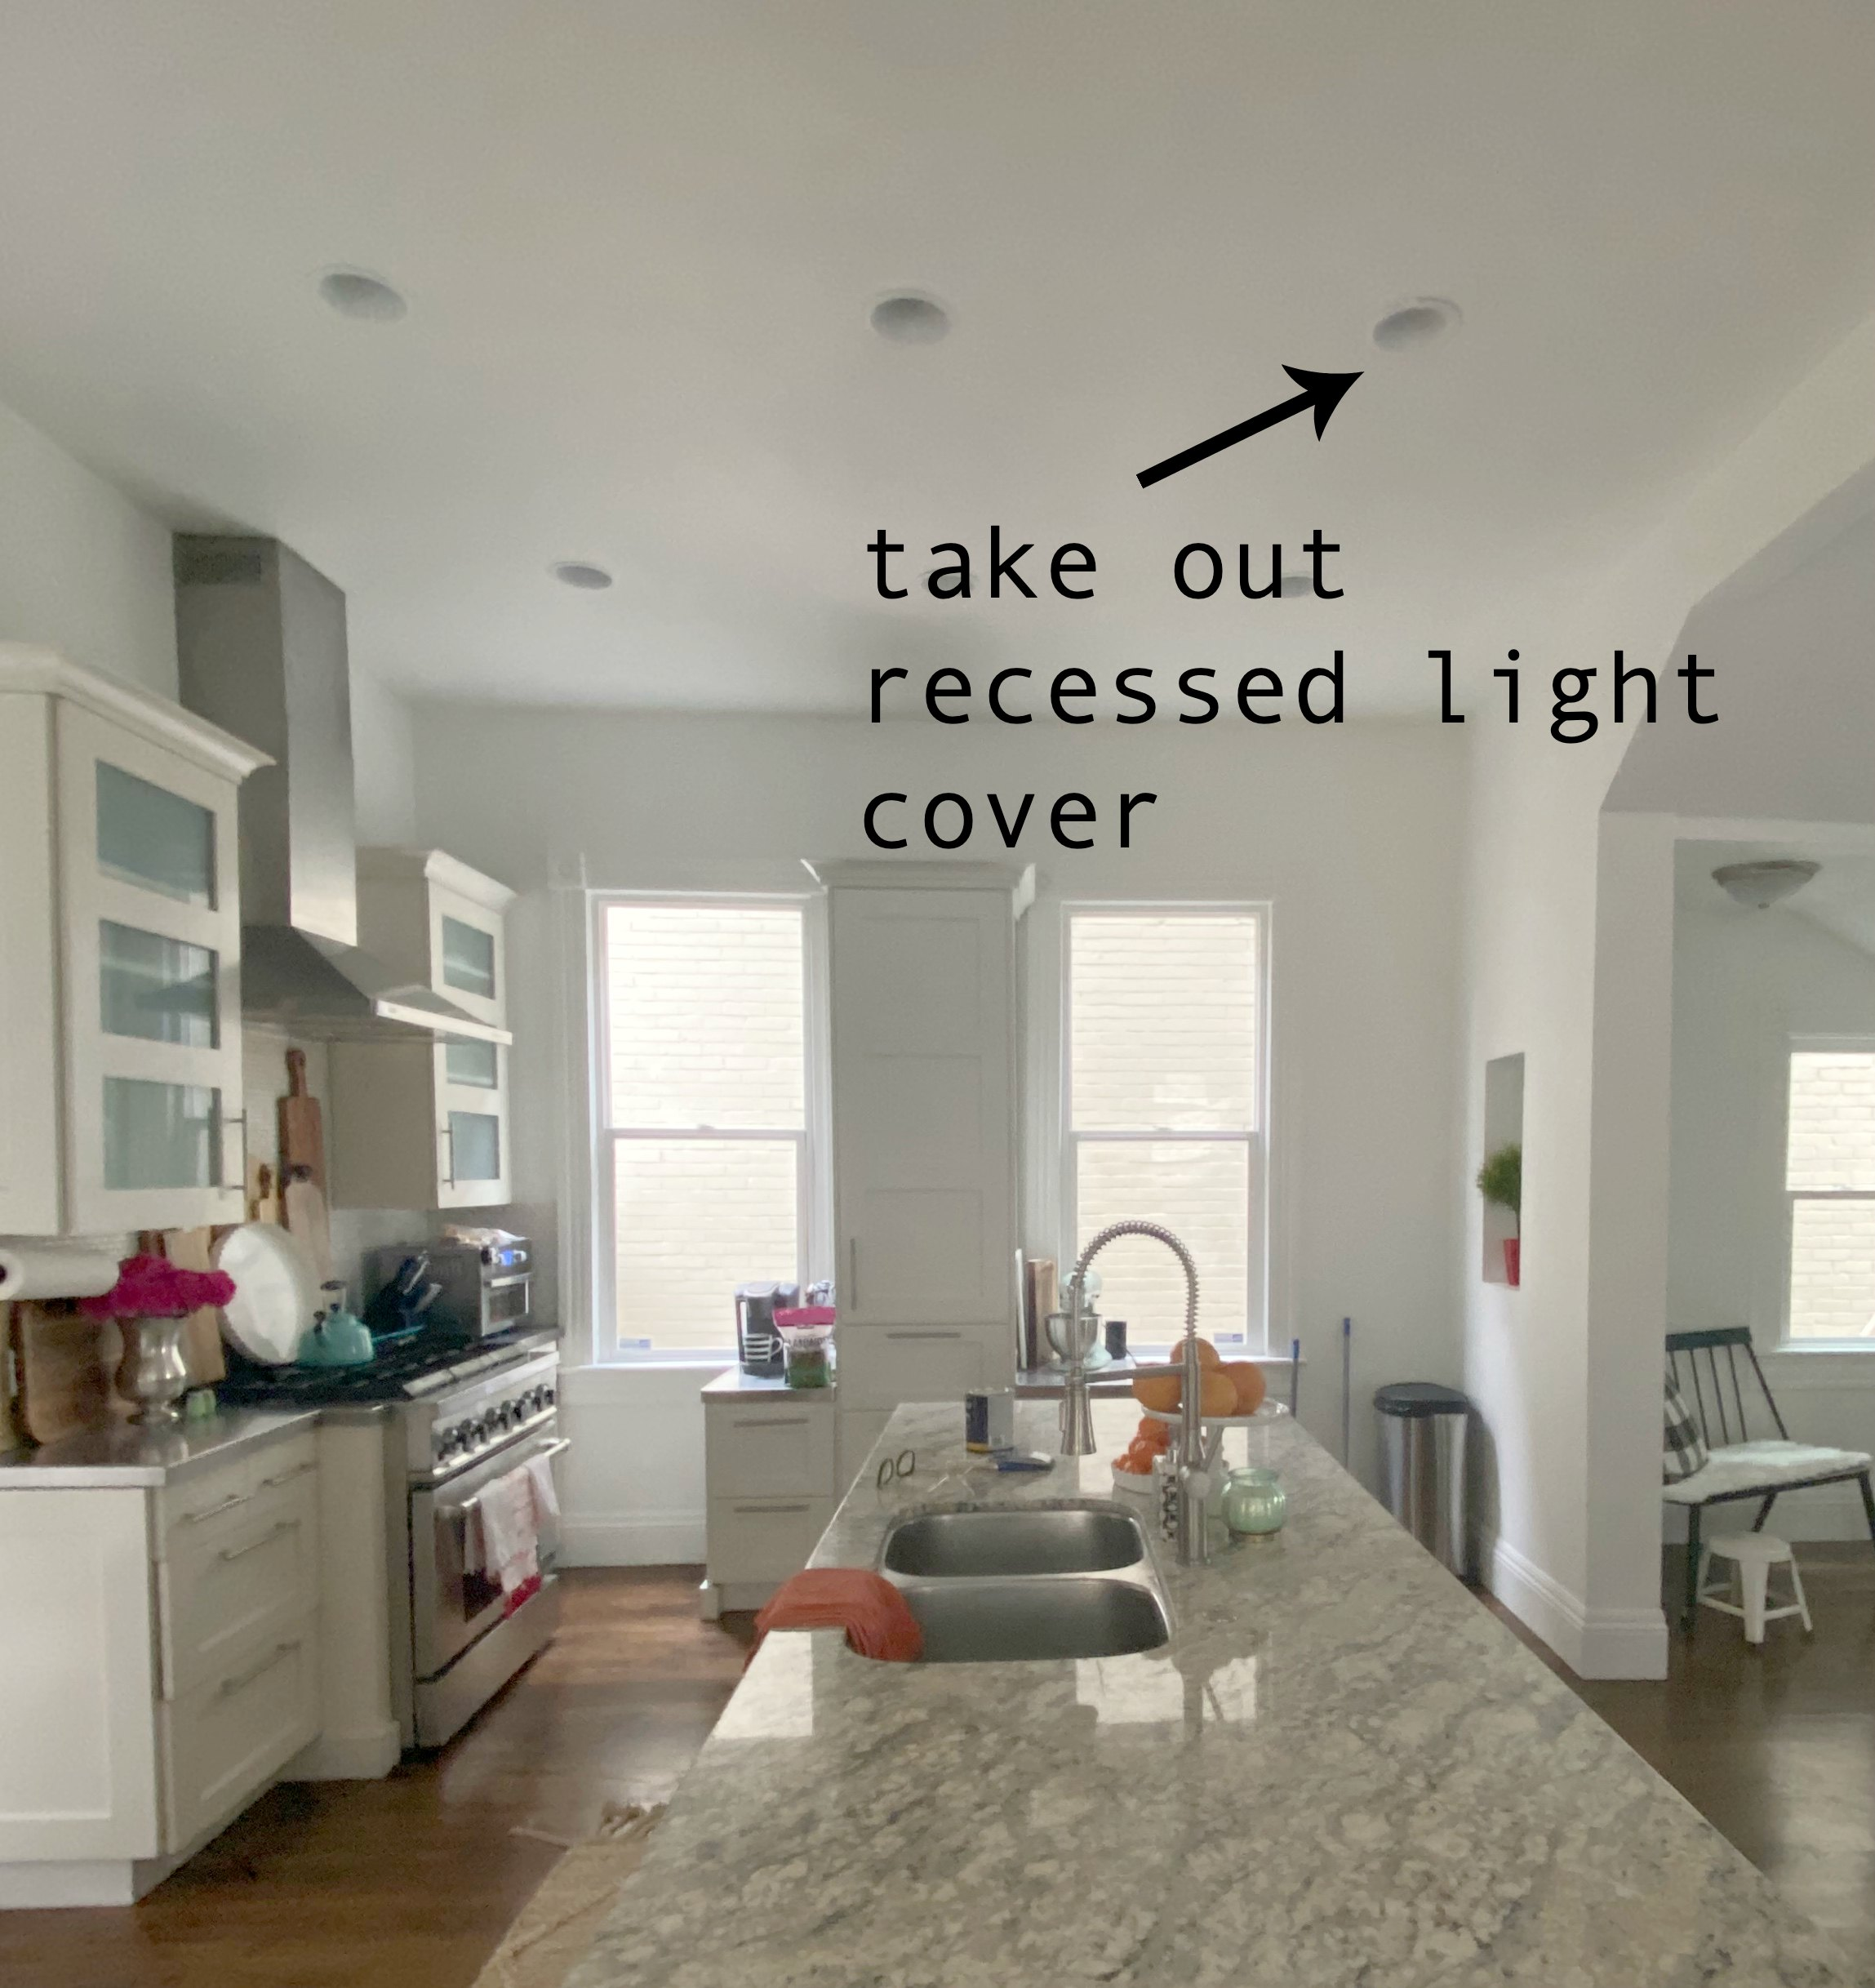 How to change recessed lights into pendant lights with no remodeling.